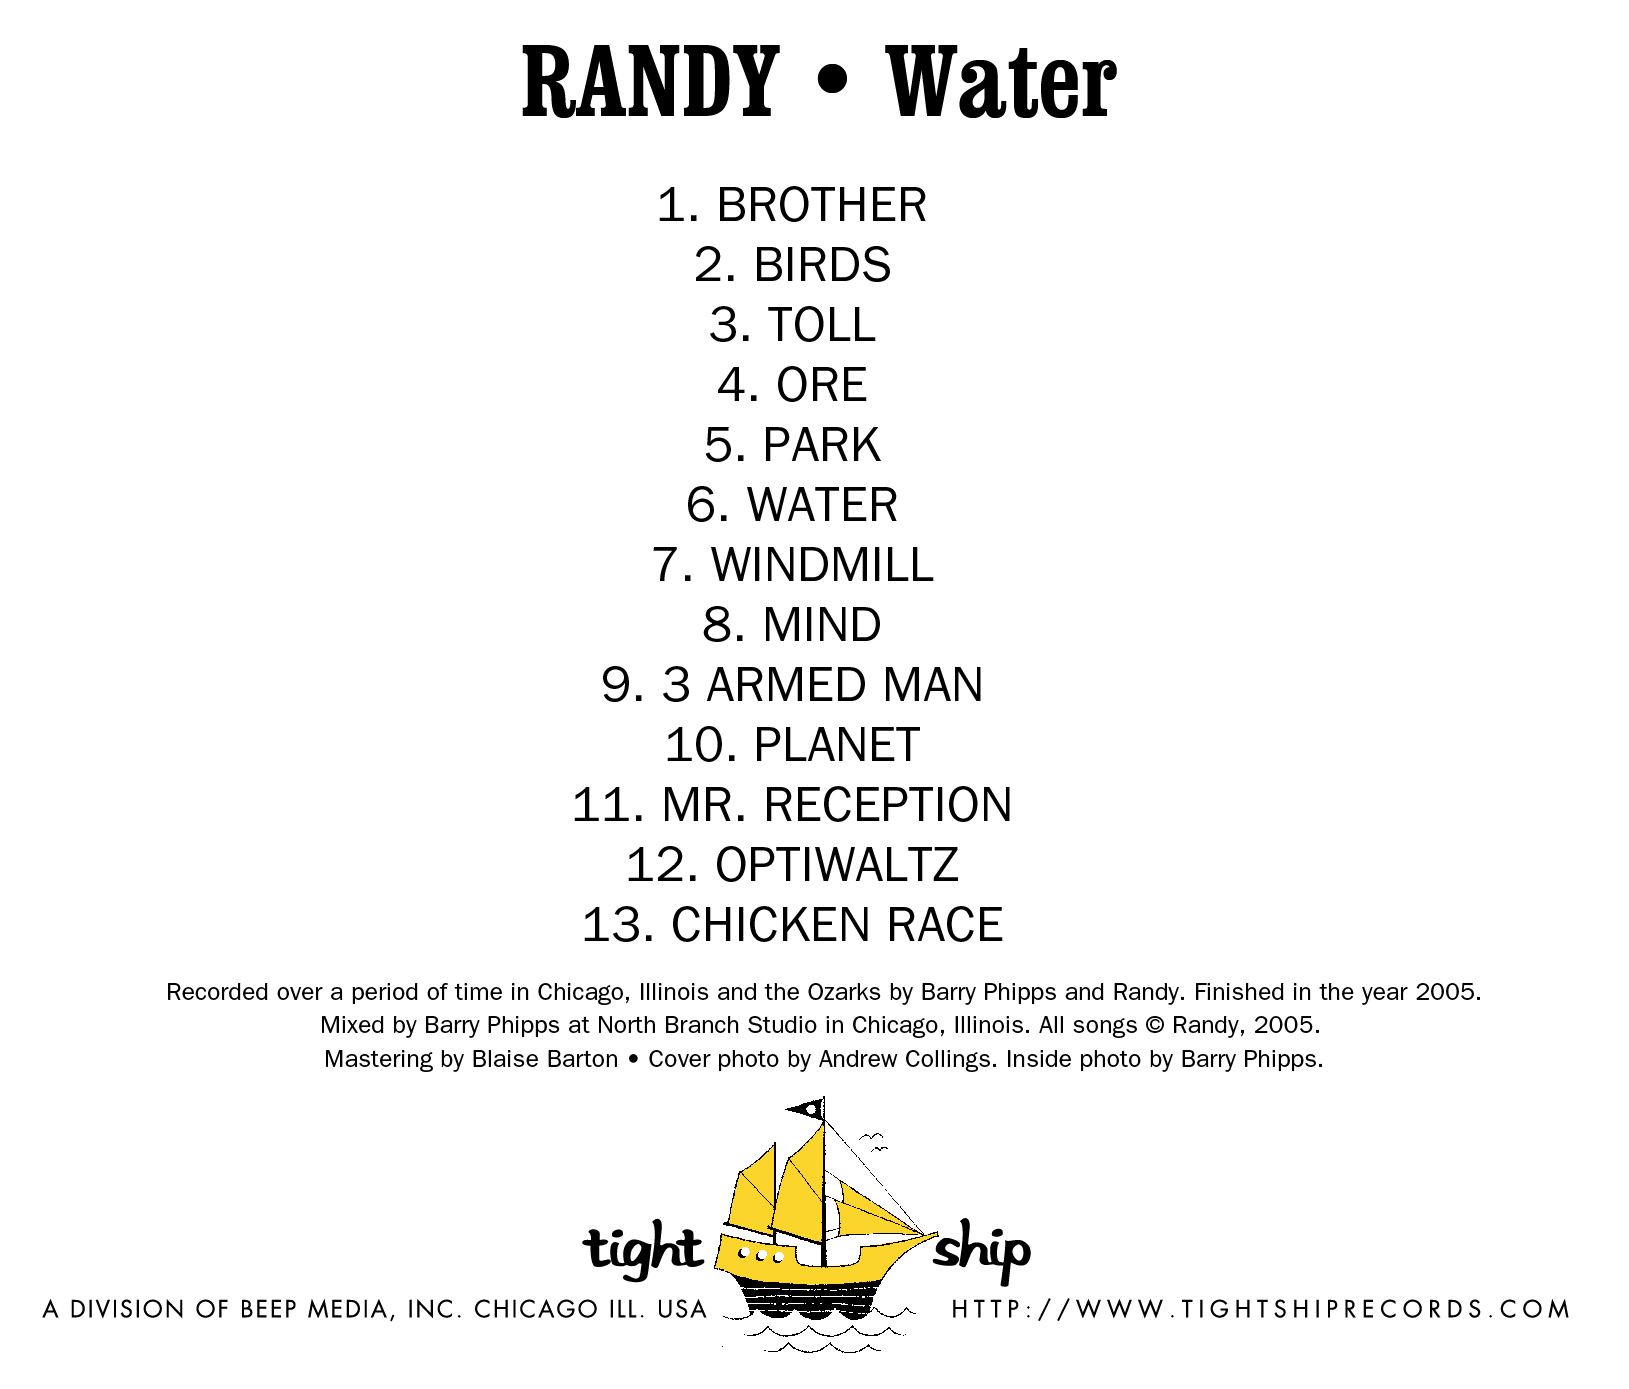 Randy • Water back.jpg